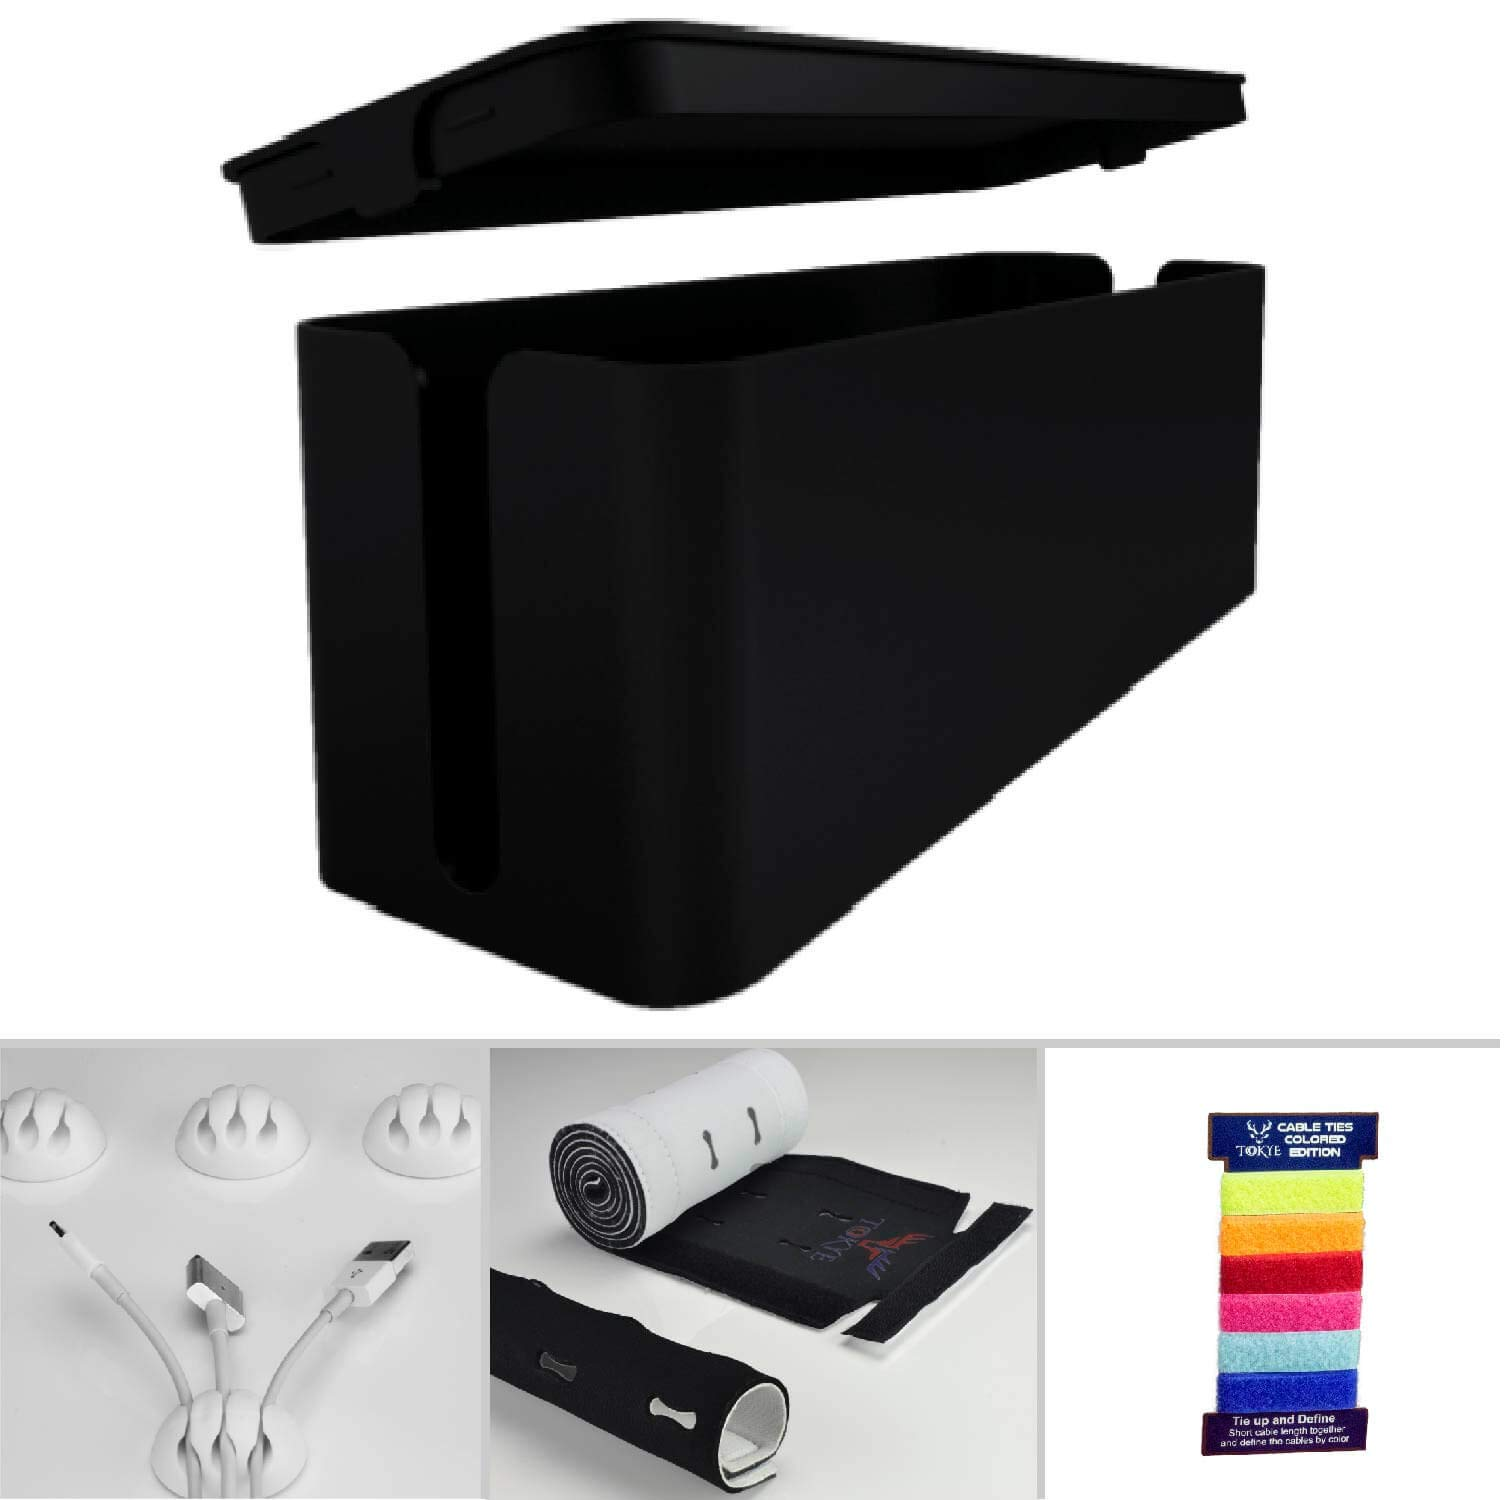 Cable Management Box, Cord Organizer and Cover with Cable kit - Desk, Wall Mounted TV, Video, Game and Computer Wire Holder, Hider, Protector with Cable Sleeve,Black Edition by Tokye Design XXL Value